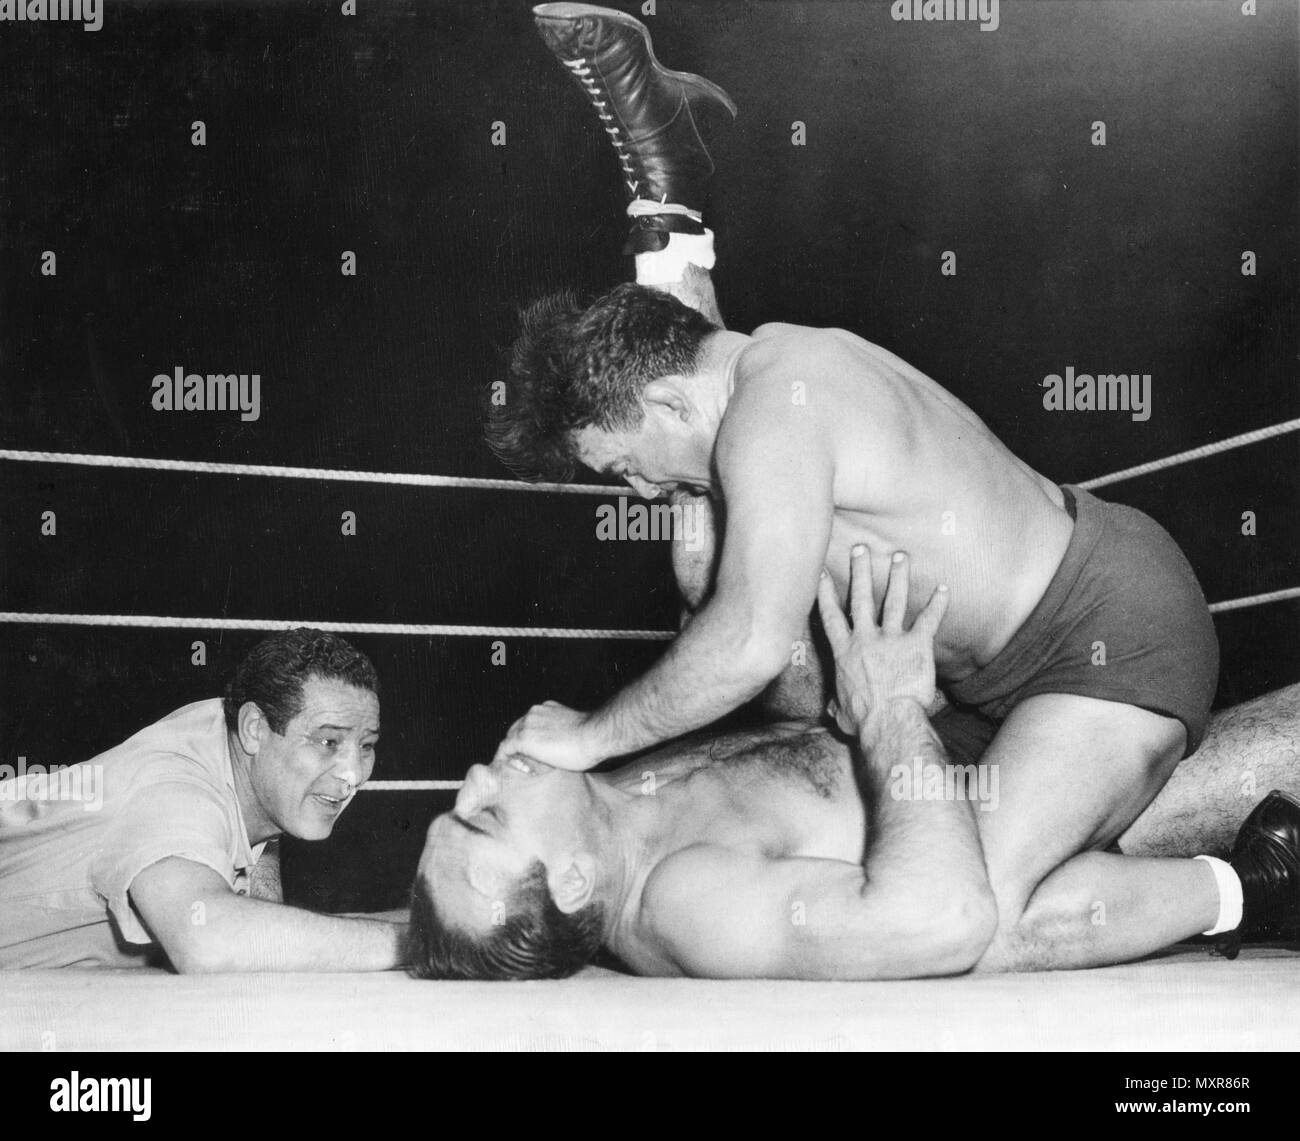 Max Baer (left), former world heavyweight boxing champion, referees a match between wrestlers Primo Carnera (on back), defeated world heavyweight boxing champion by Baer, and Jim Londos. Chicago, IL, 5/5/1950. - Stock Image